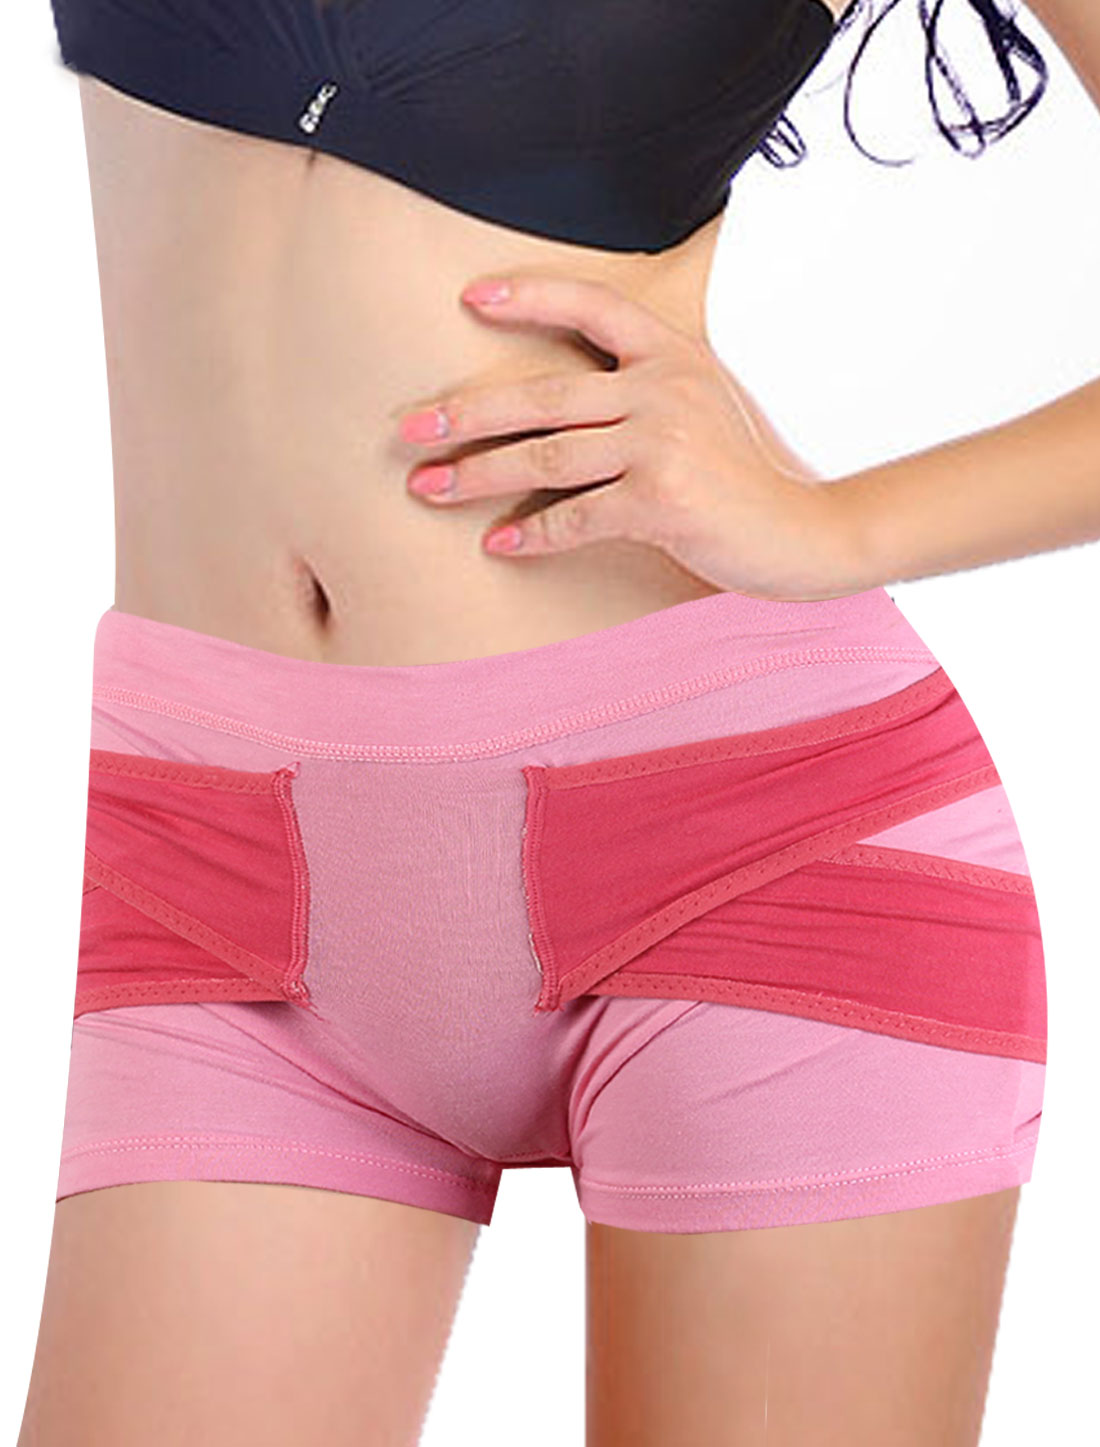 Ladies Fuchsia Pink Stretch Sleeping Beauty Panties Shorts Hip Shaper Enhancer L